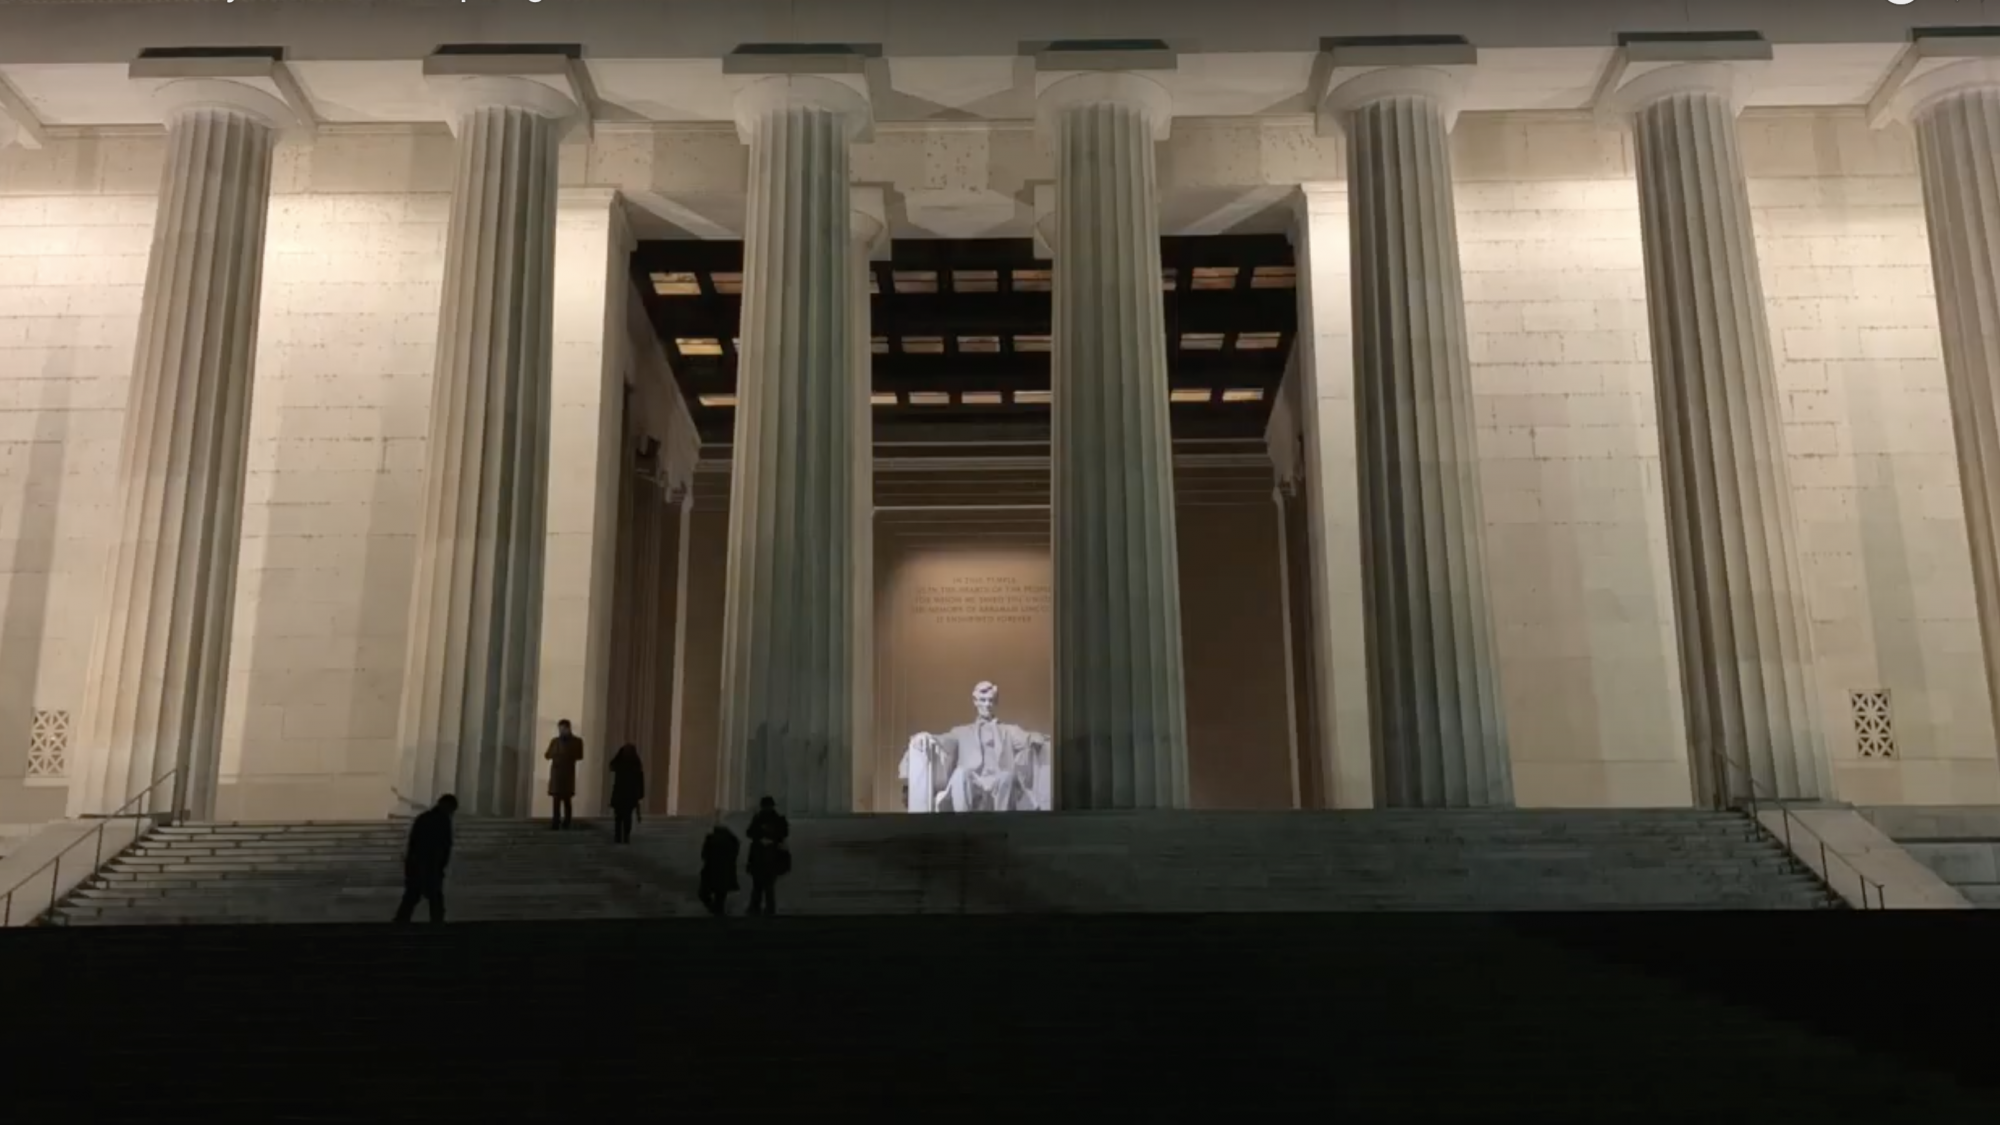 Lincoln Memorial lit up at night